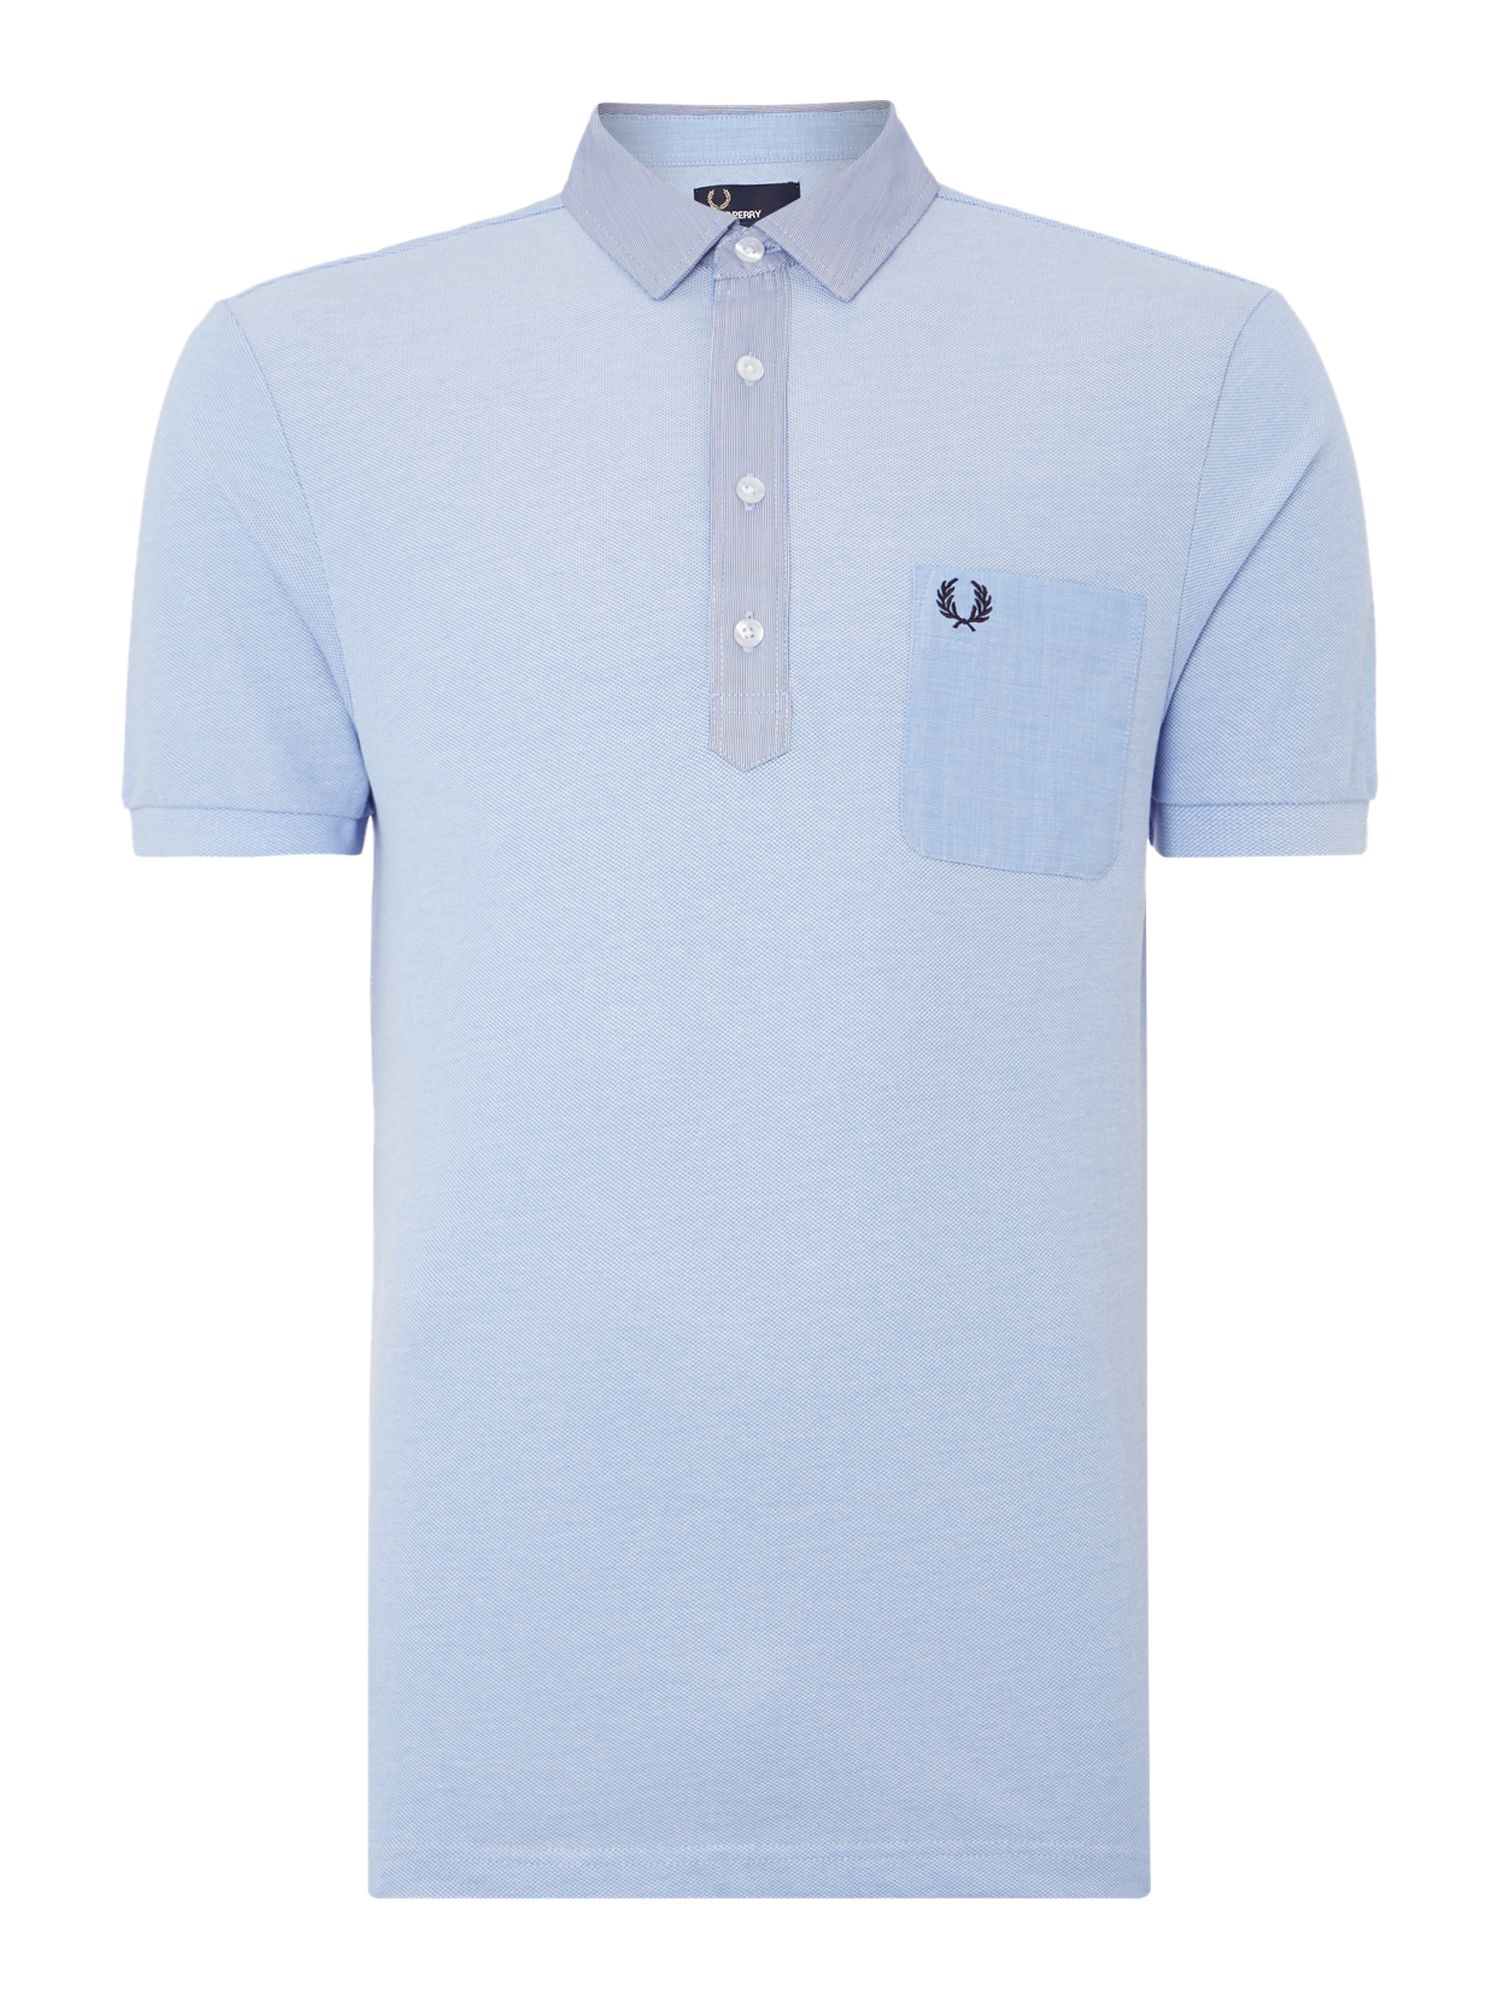 Mens Fred Perry Plain Regular Fit Woven Trim Polo Shirt Grey